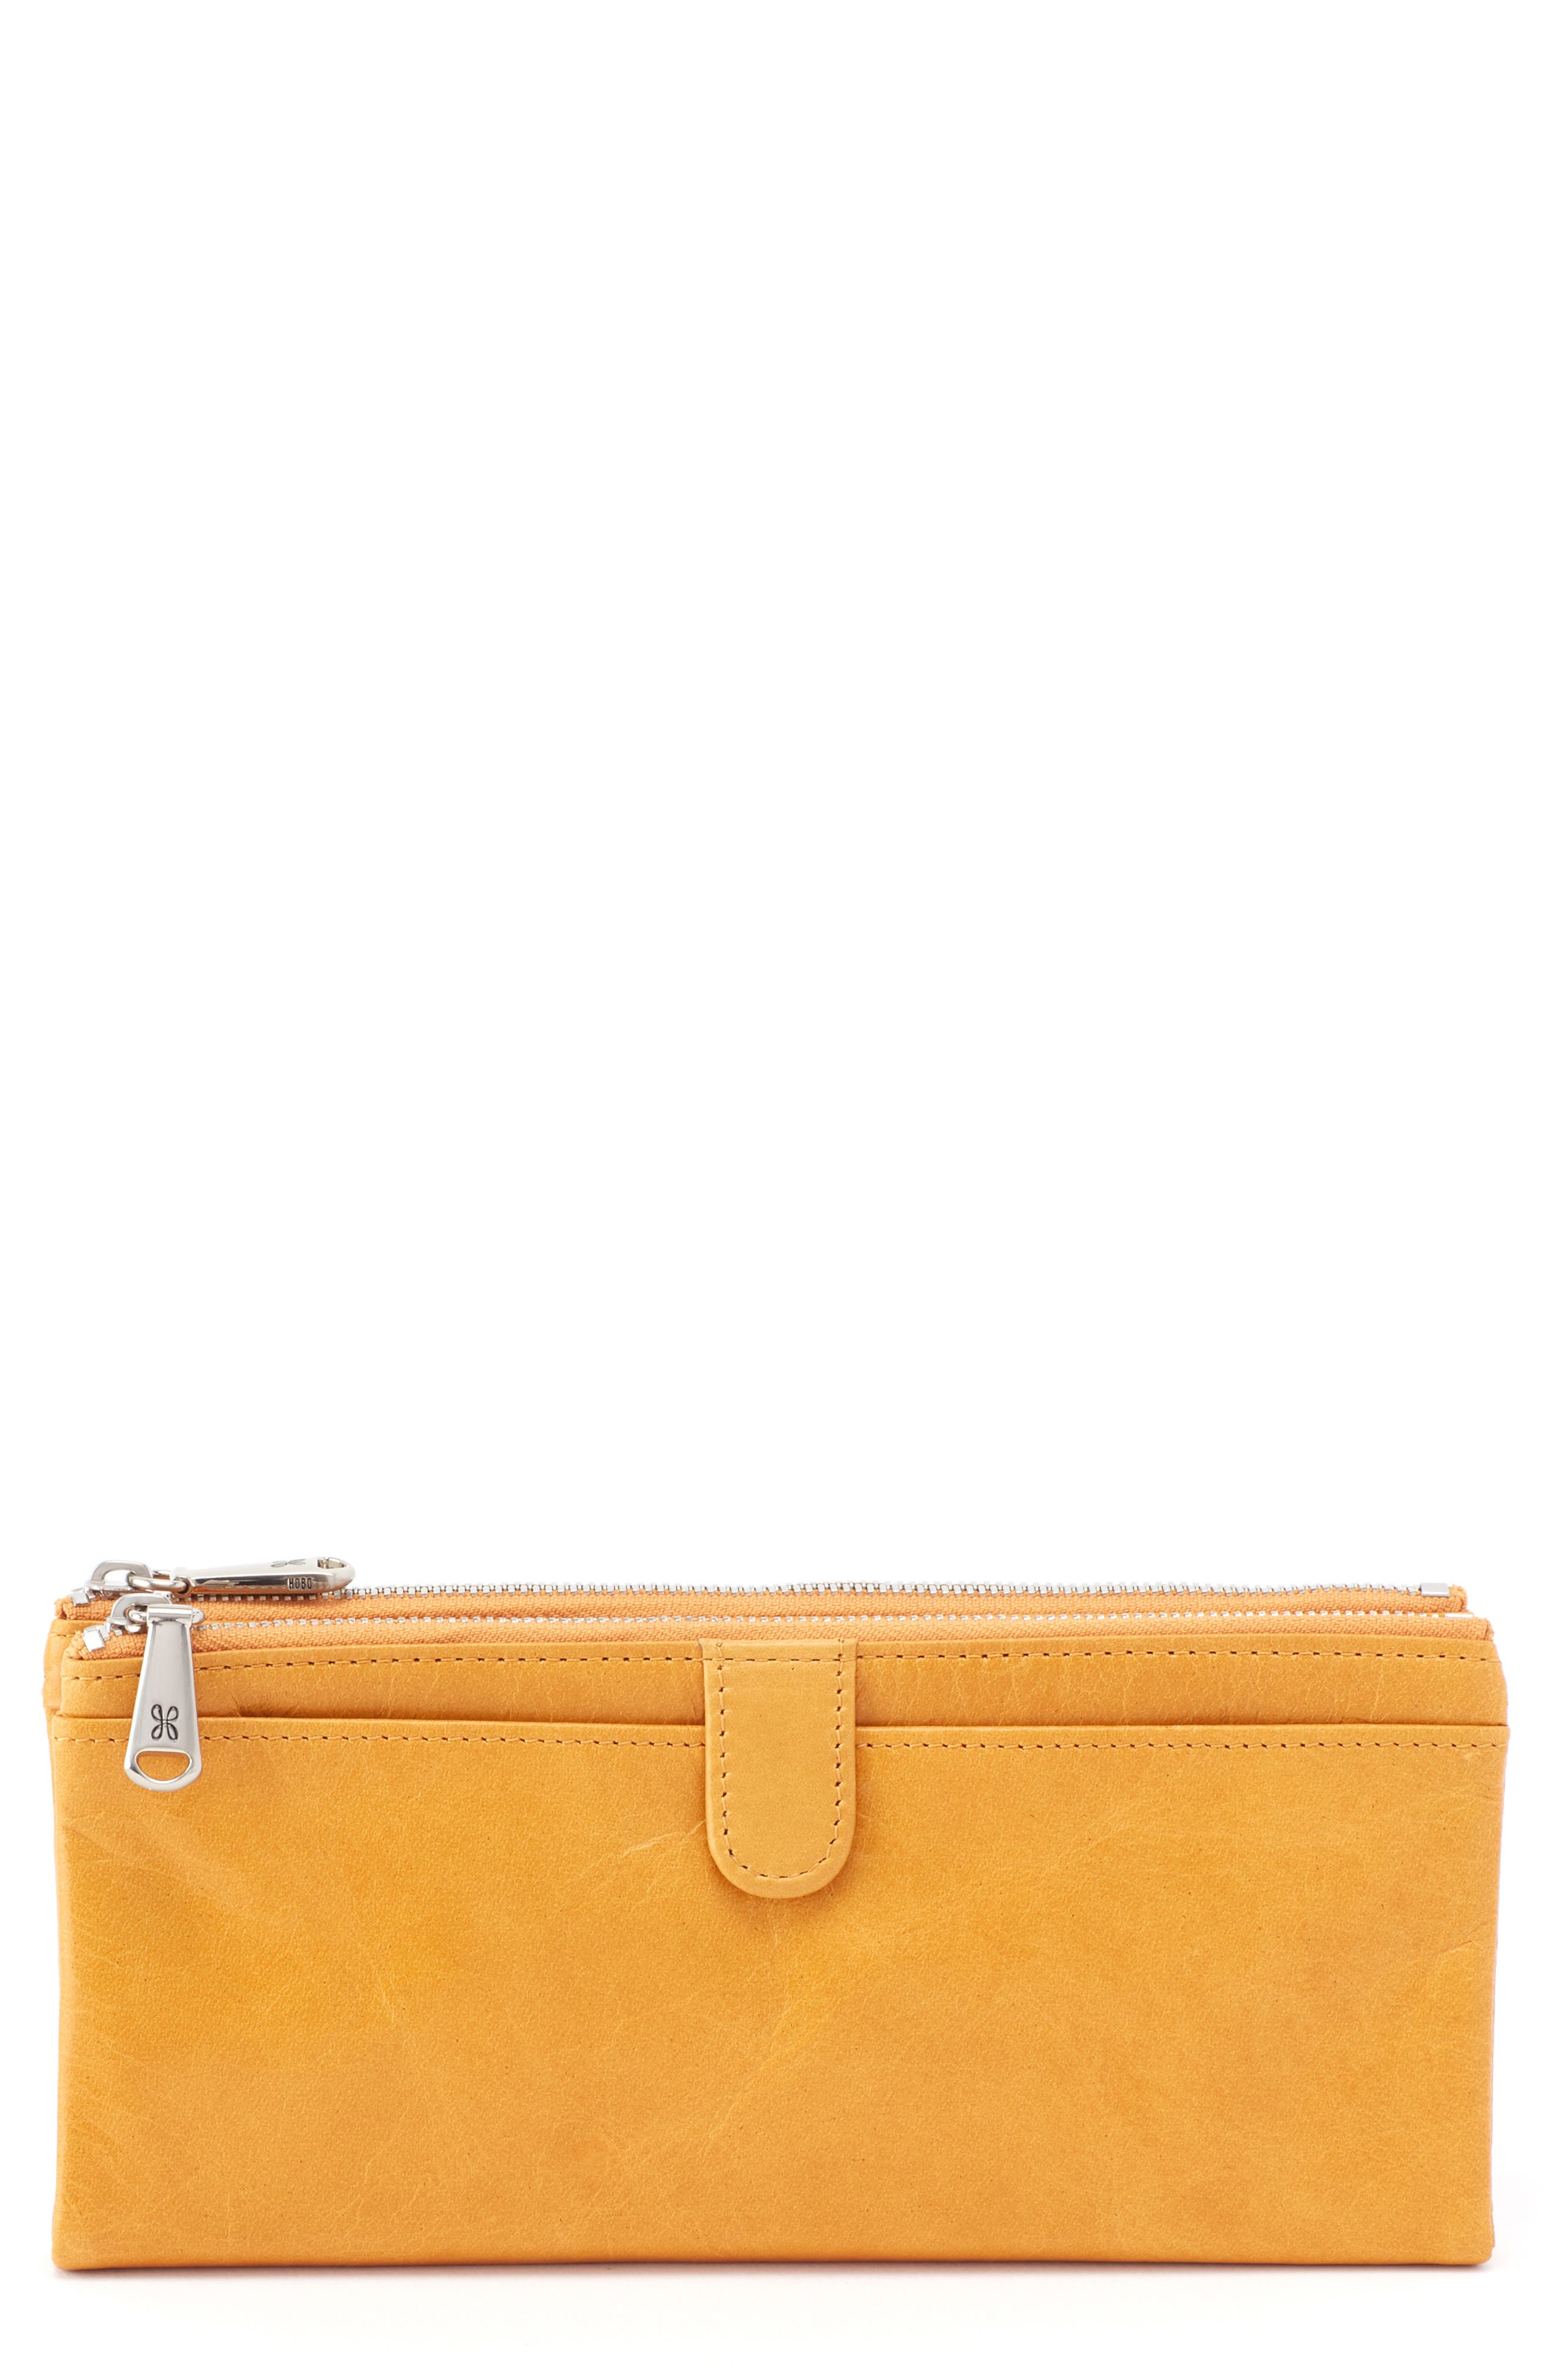 'Taylor' Glazed Leather Wallet,                         Main,                         color, Amber